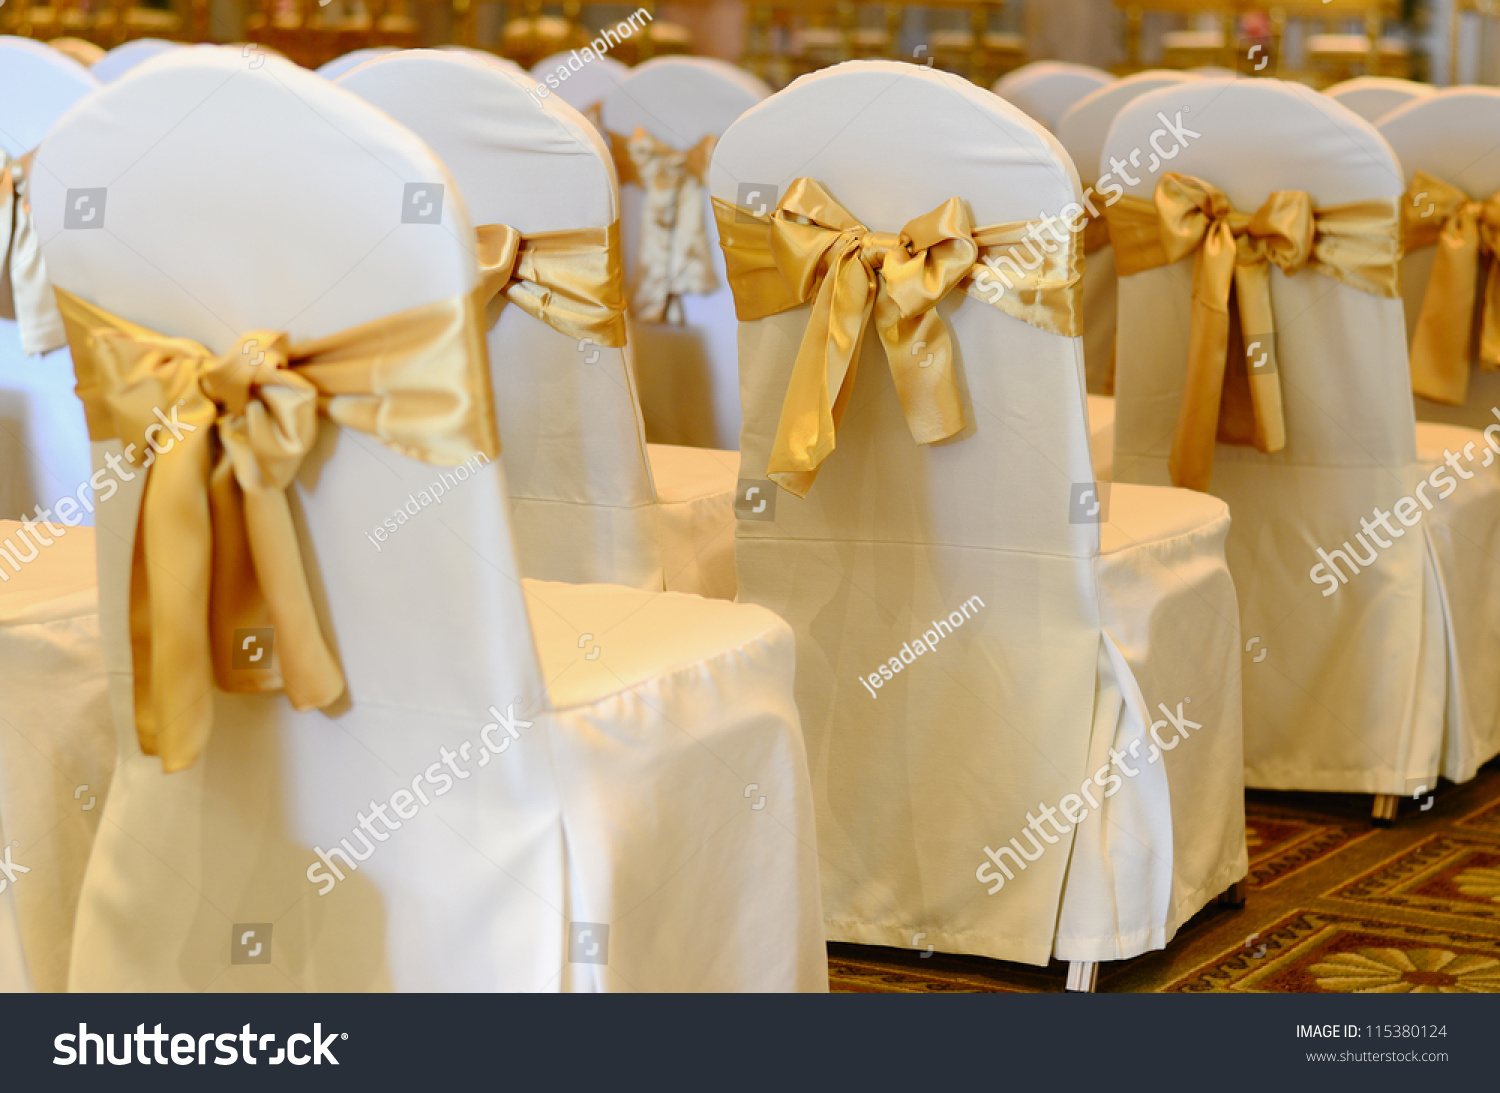 White Chairs At A Wedding Indoor Stock Photo: Wedding Chairs Row Decorated Golden Color Stock Photo